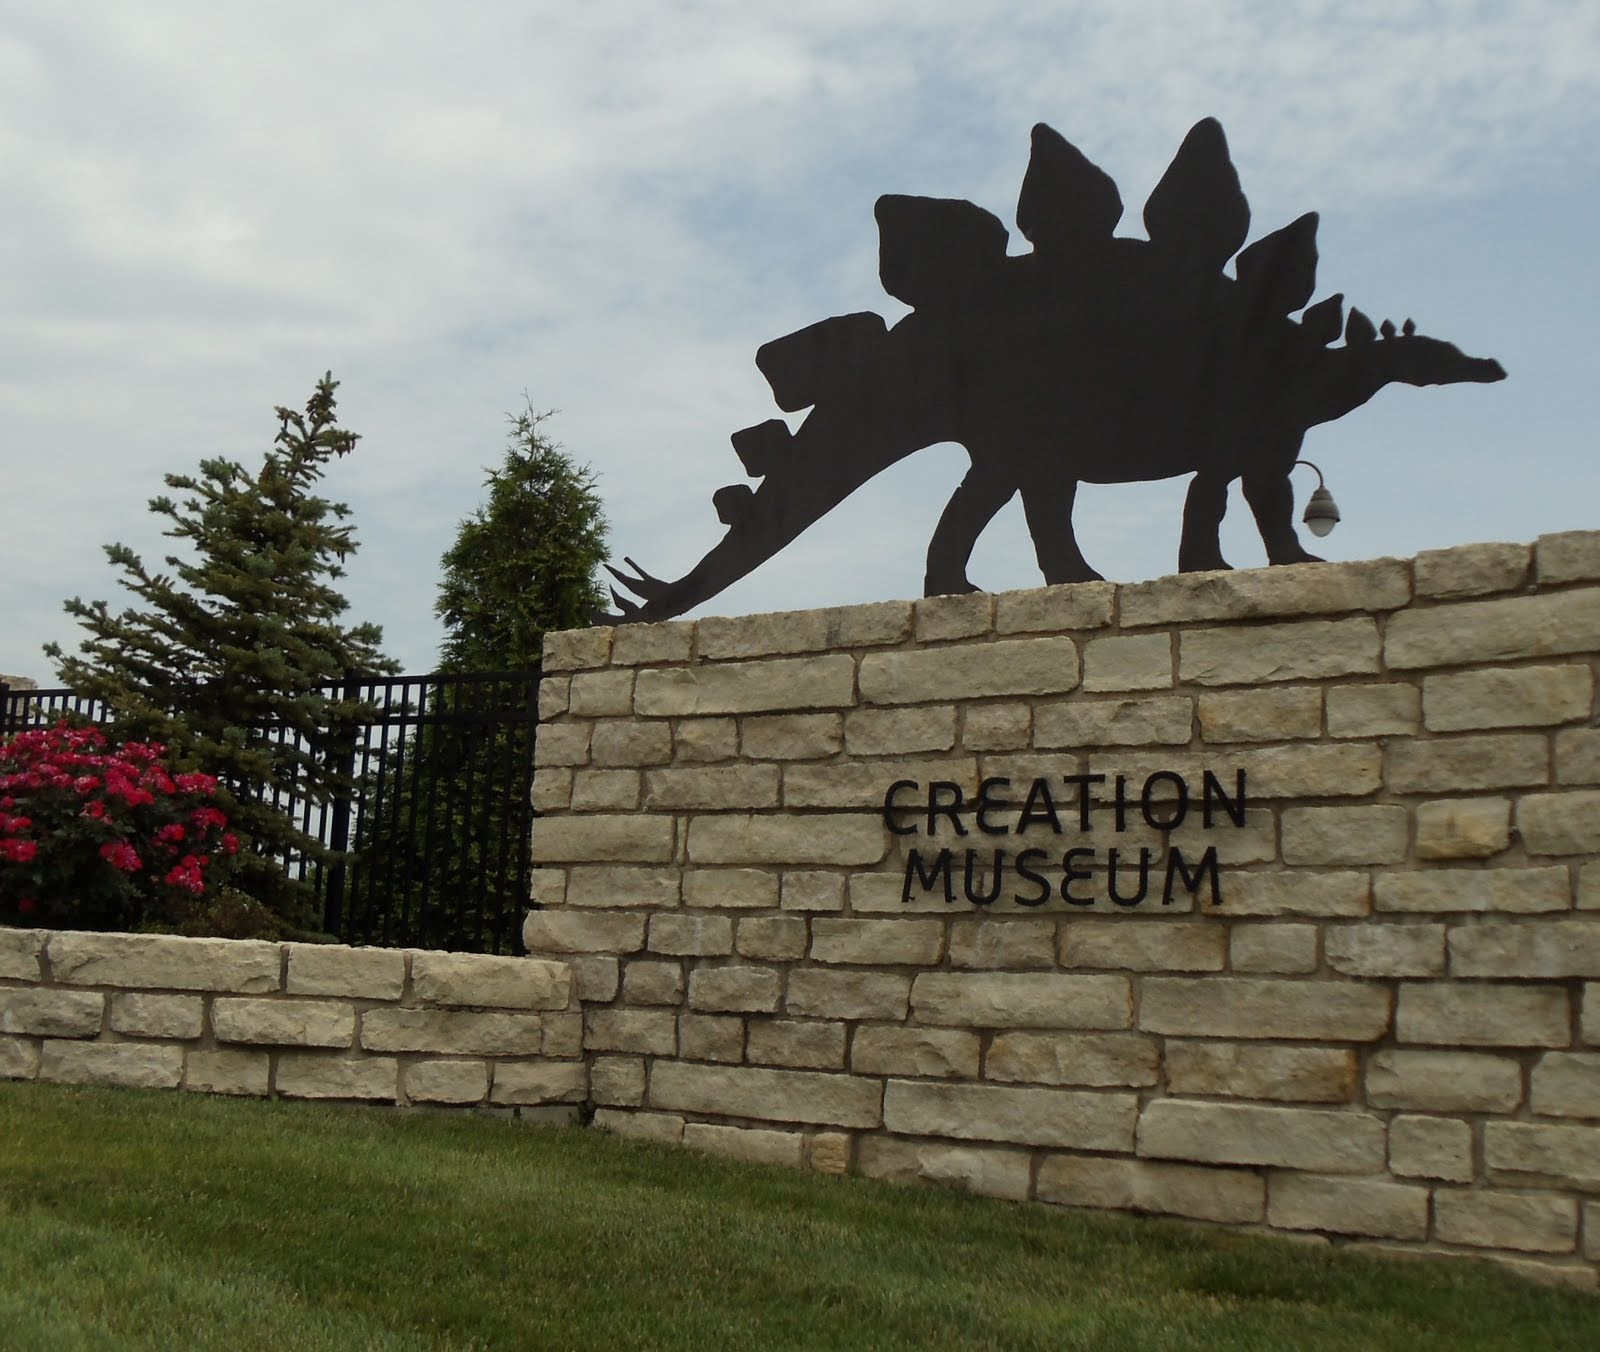 Strelitzia Creation Museum